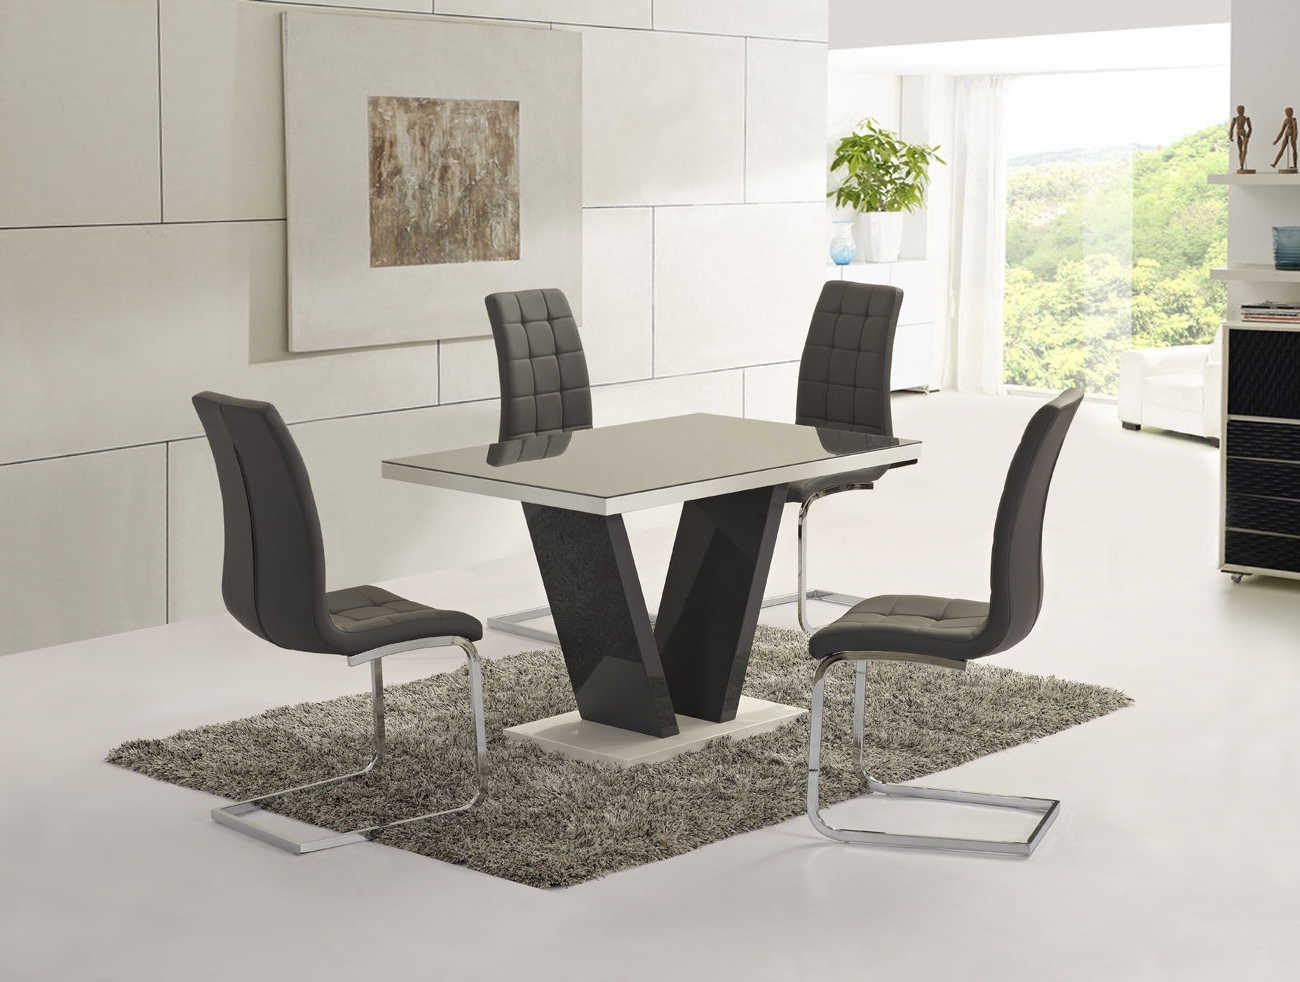 Best And Newest Ga Vico Gloss Grey Glass Top Designer 160Cm Dining Set – 4 6 Grey Throughout White Gloss Dining Tables Sets (Gallery 14 of 25)